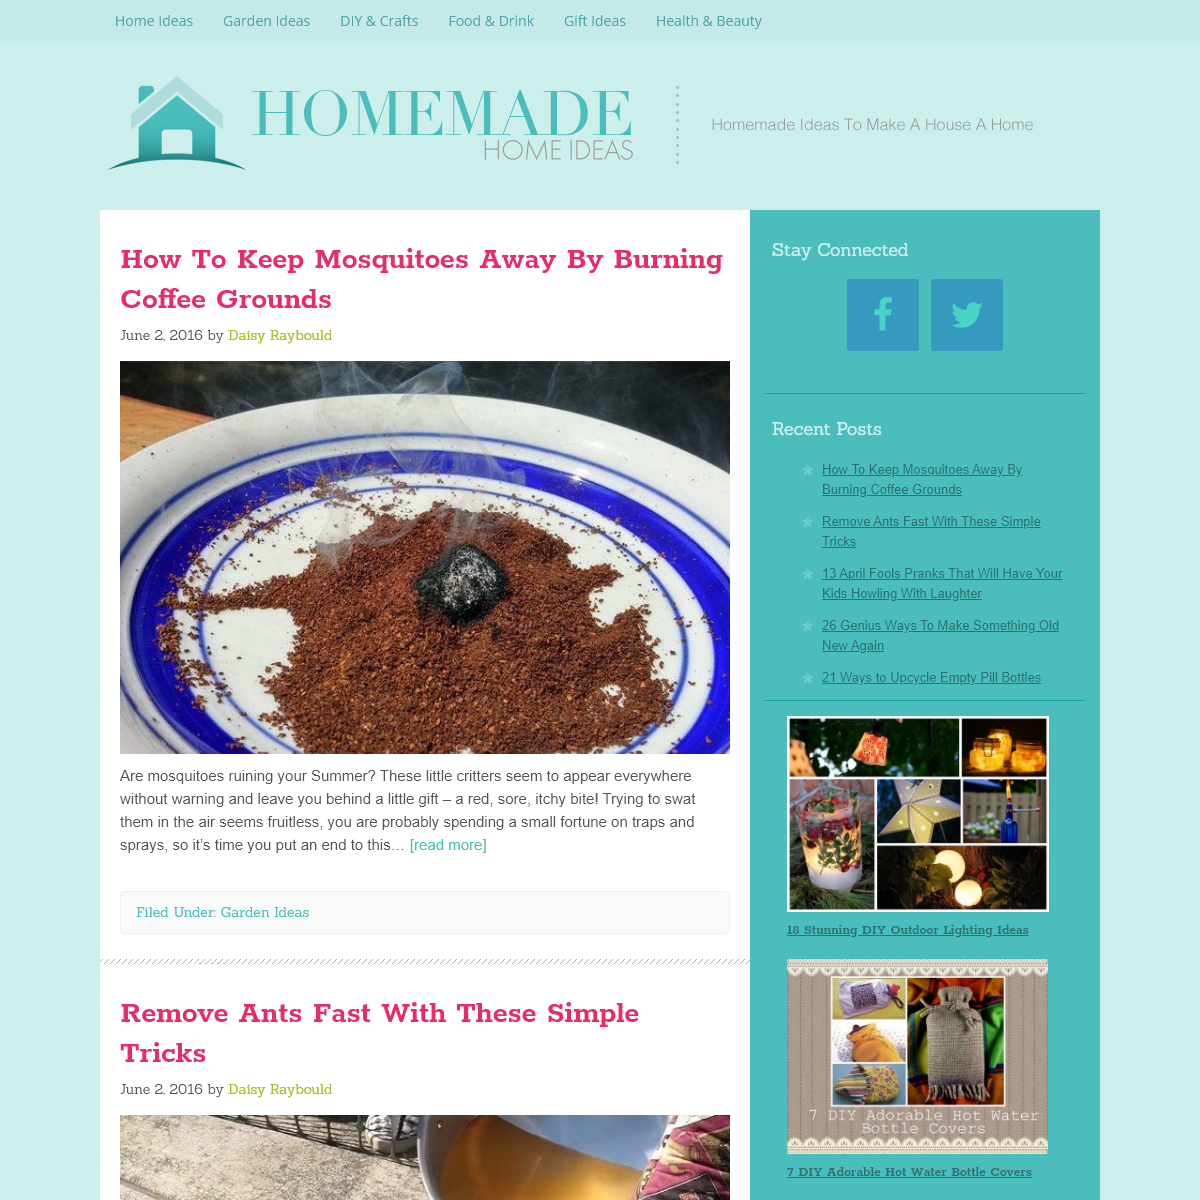 Homemade Home Ideas – Homemade Projects To Make A House A Home — Homemade Ideas To Make A House A Home